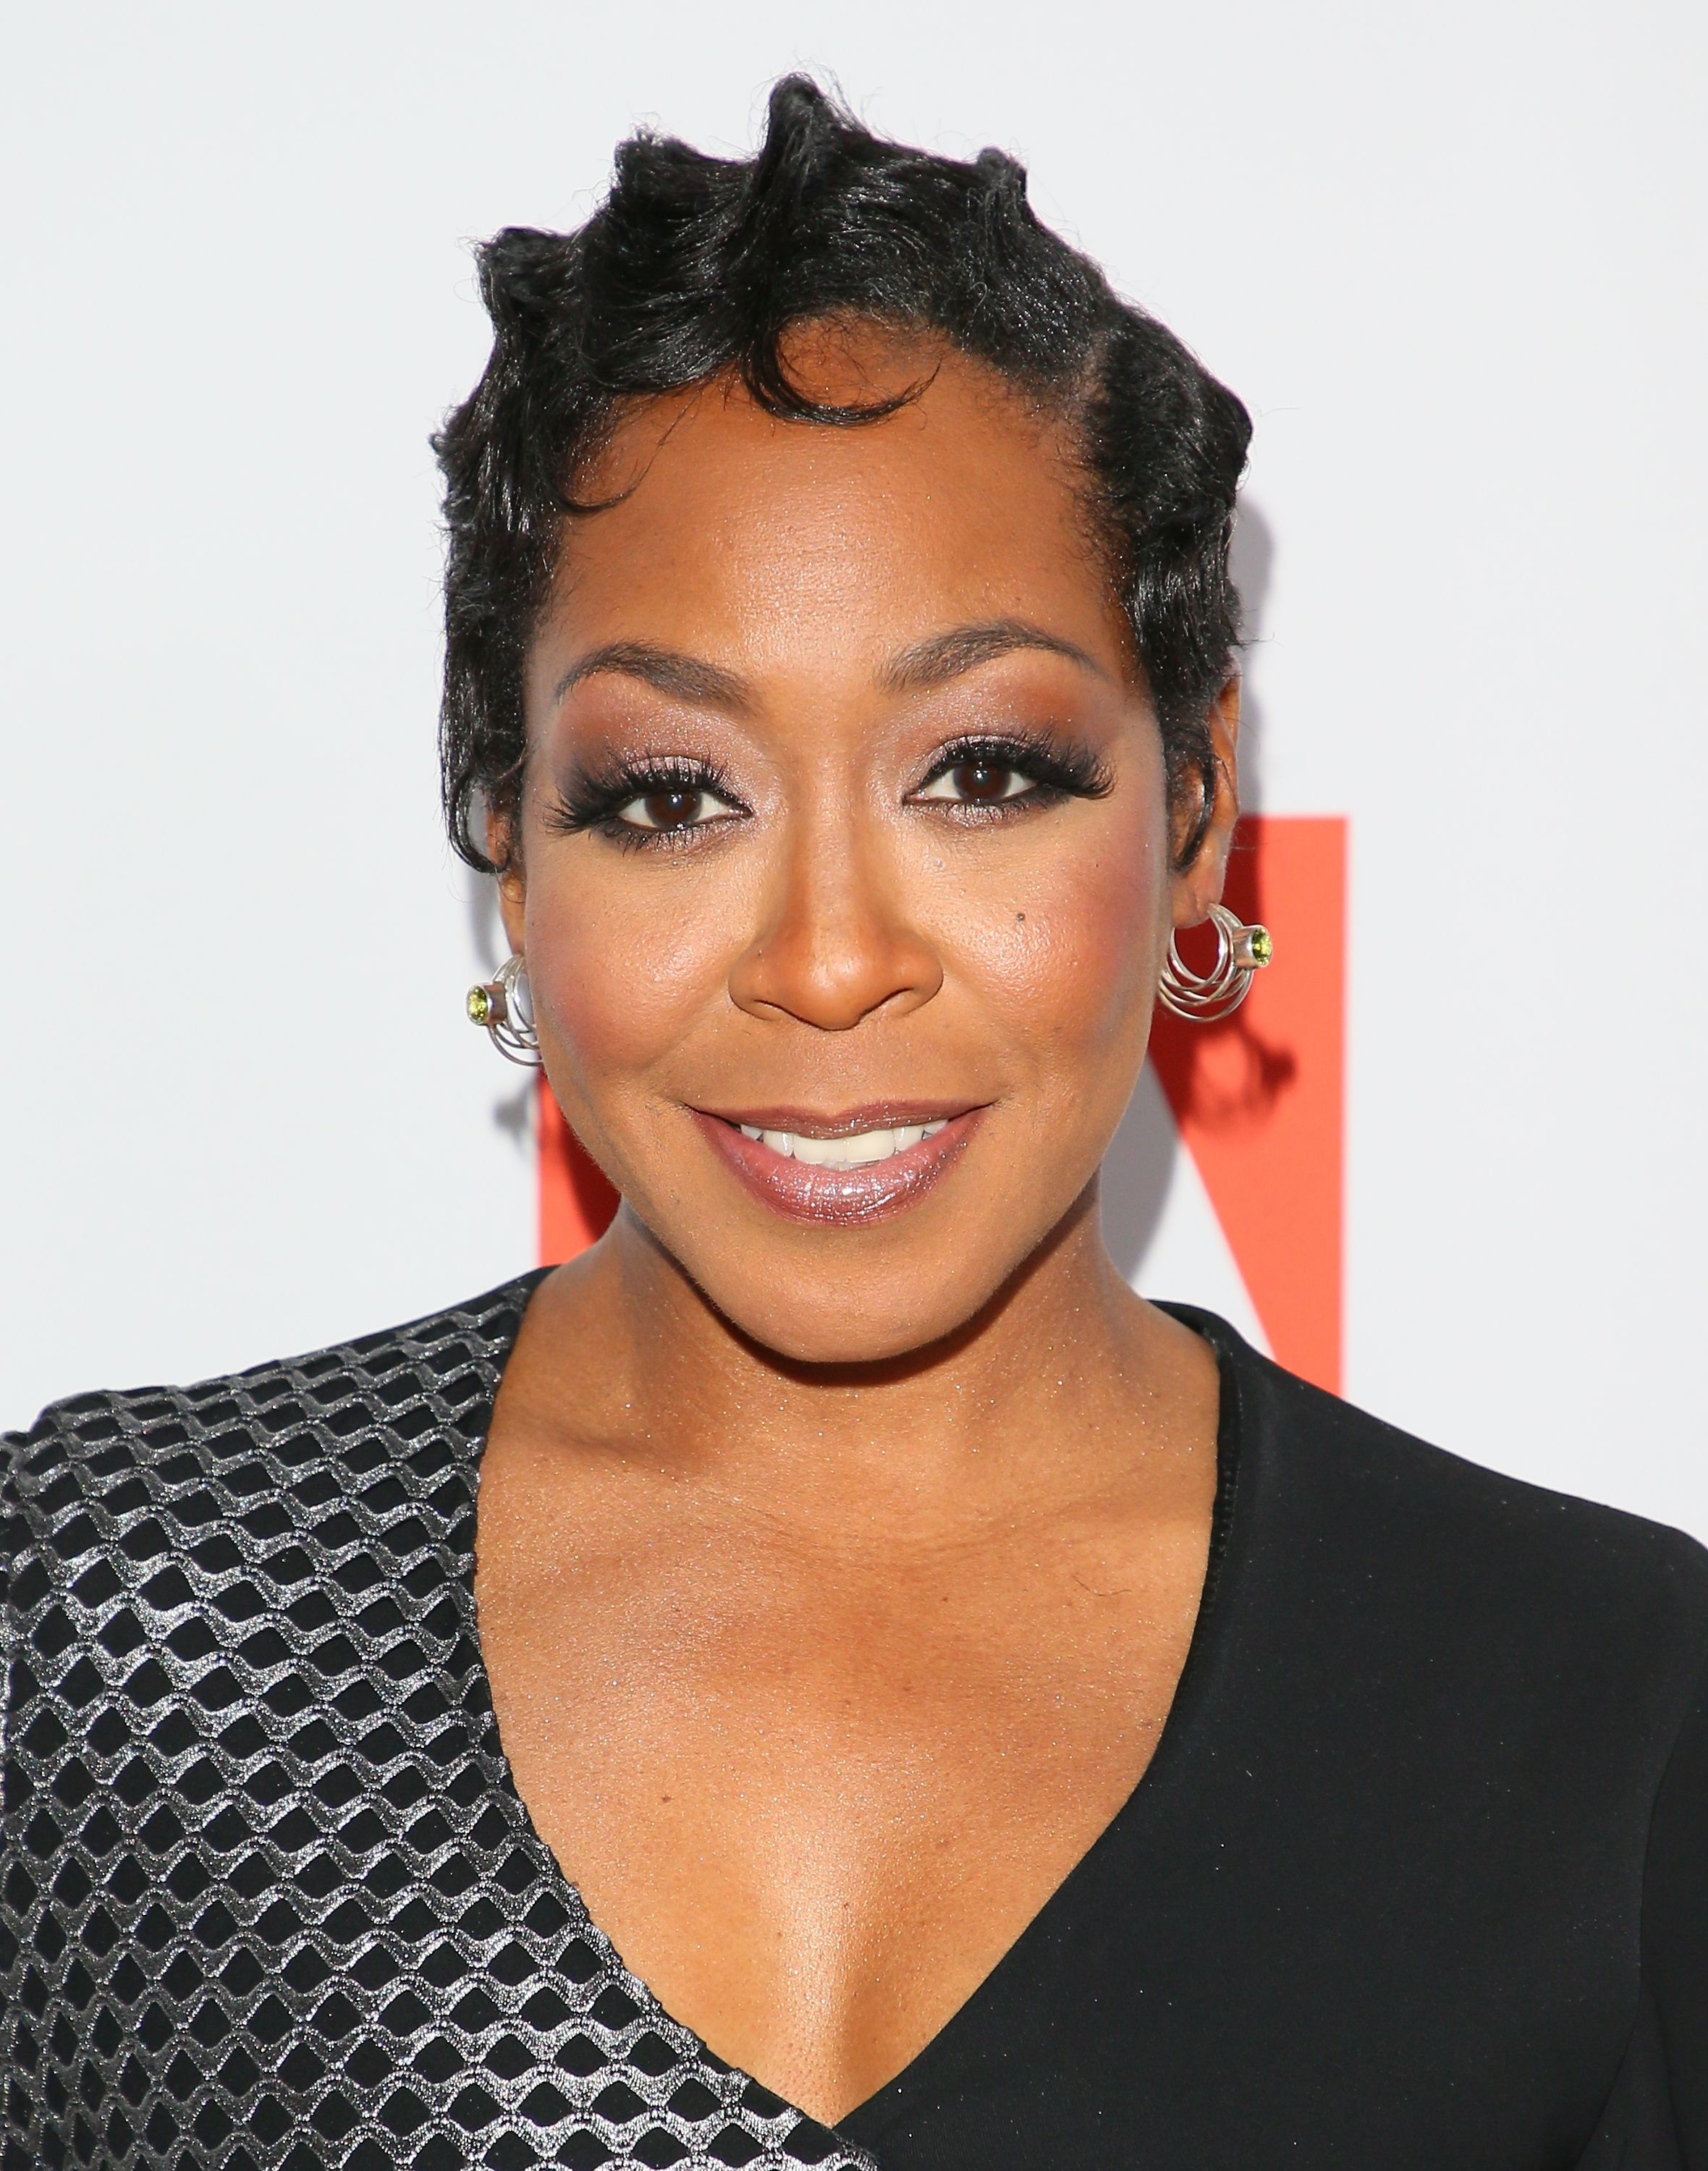 Tichina Arnold attends the 68th Annual ACE Eddie Awards on January 27, 2018 in Beverly Hills, California. | Source: Getty Images